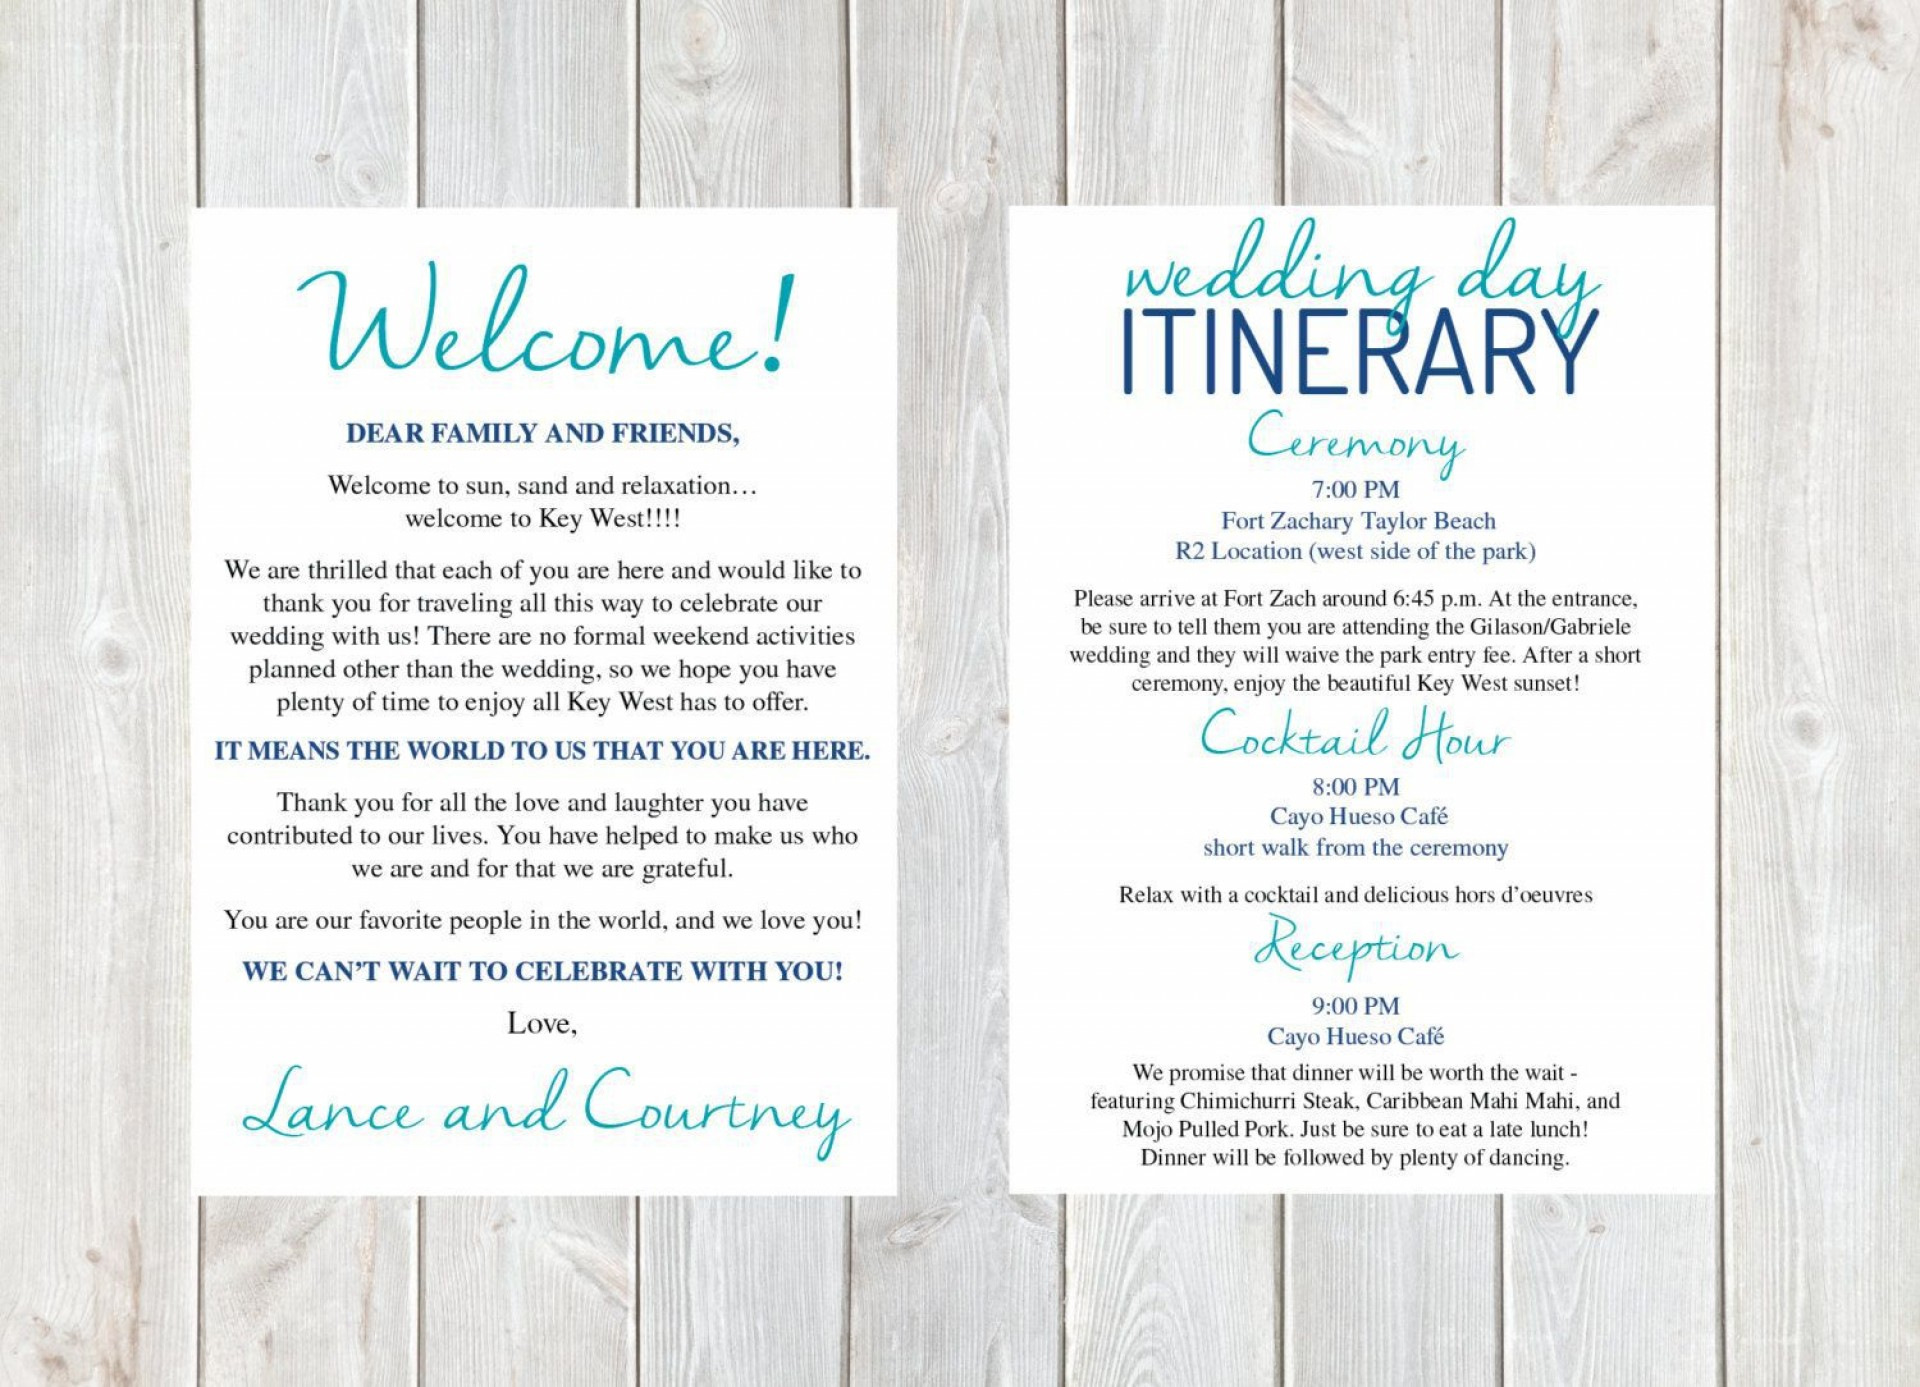 003 Exceptional Cruise Wedding Welcome Letter Template Concept 1920